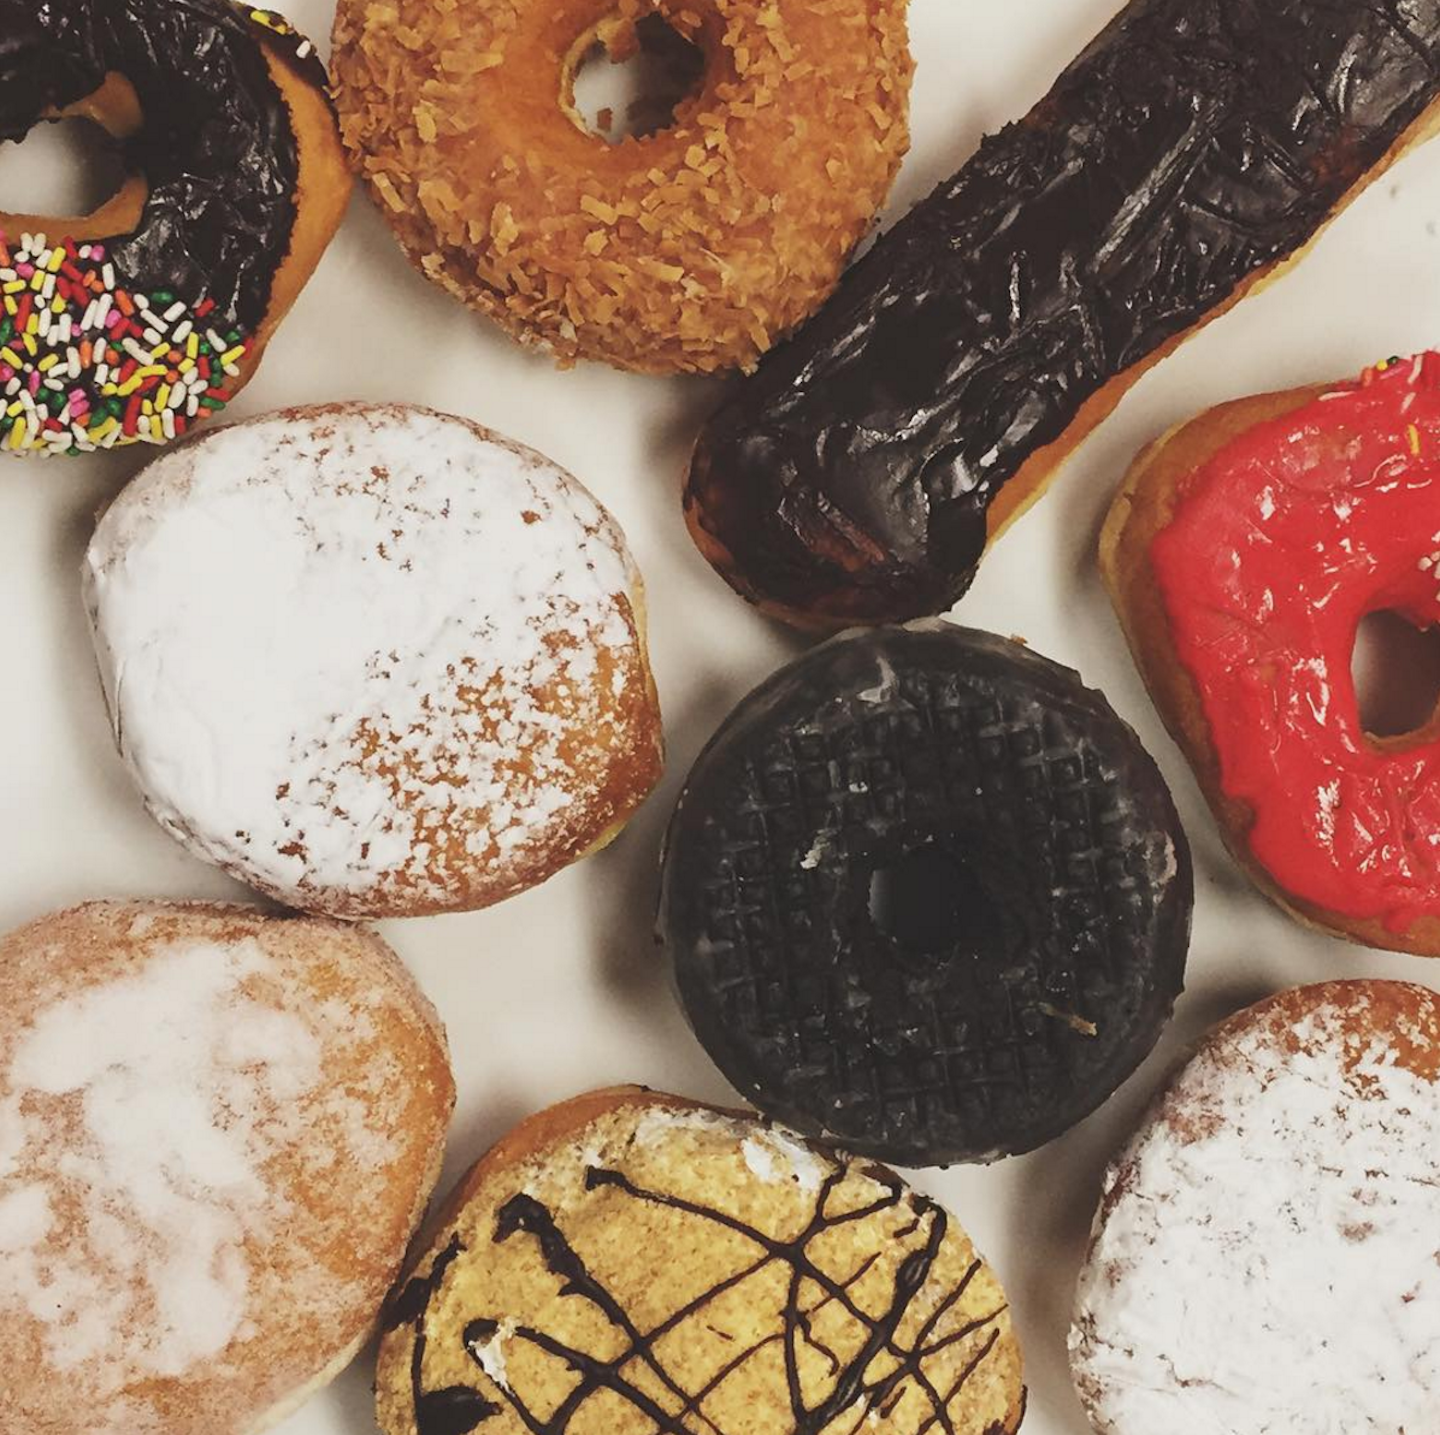 The 11 Greatest Donut Shops In America